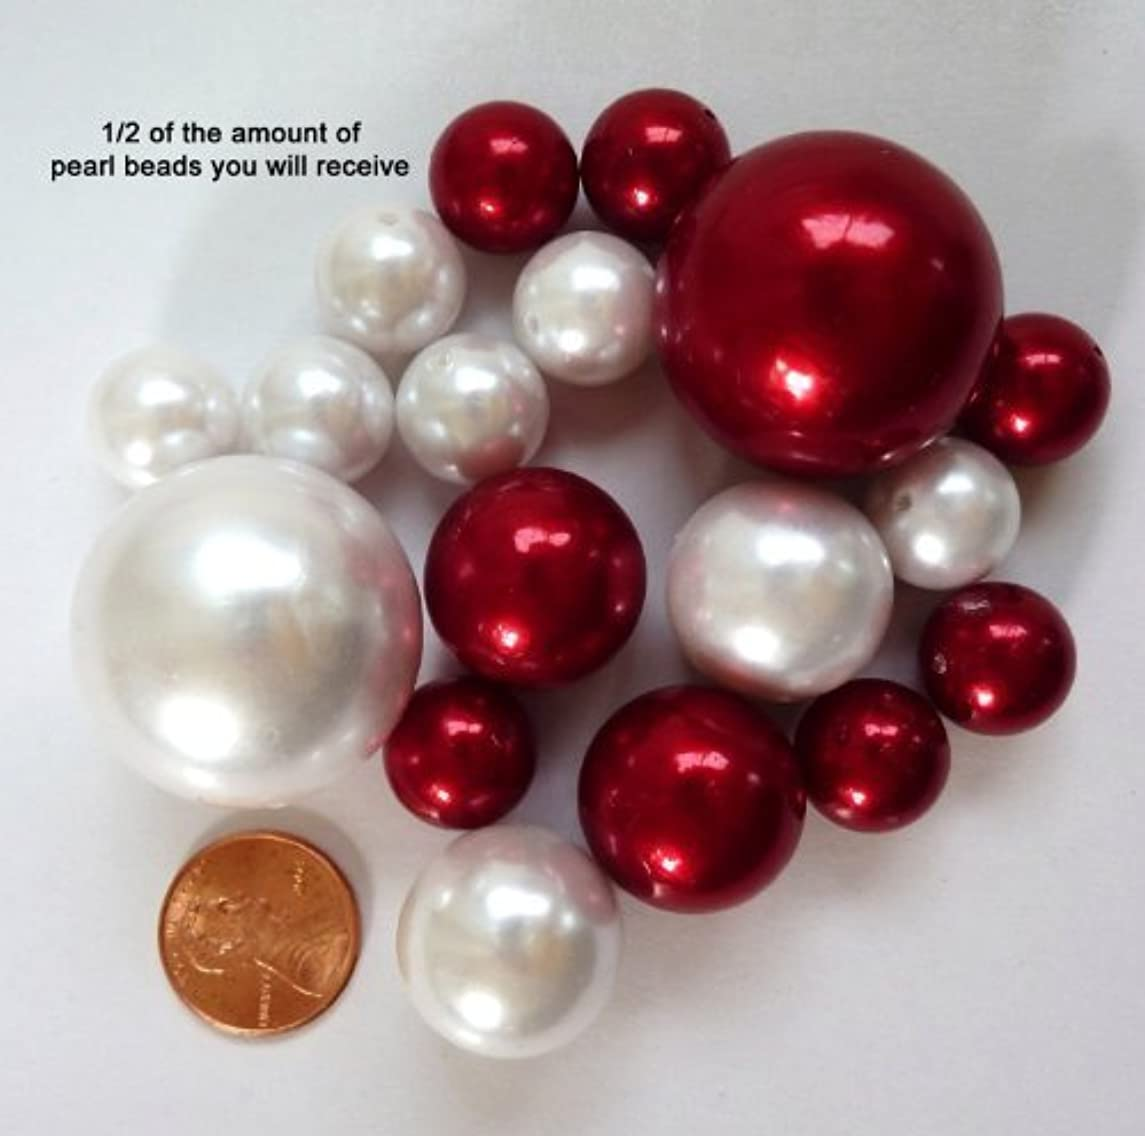 Easy Elegance by JellyBeadZ 34 Garnet Burgundy and White Pearl Beads - 12 Gram Pack Clear JellyBeadZ That Float the Pearls is Included. Great for Wedding Centerpieces and Decorations